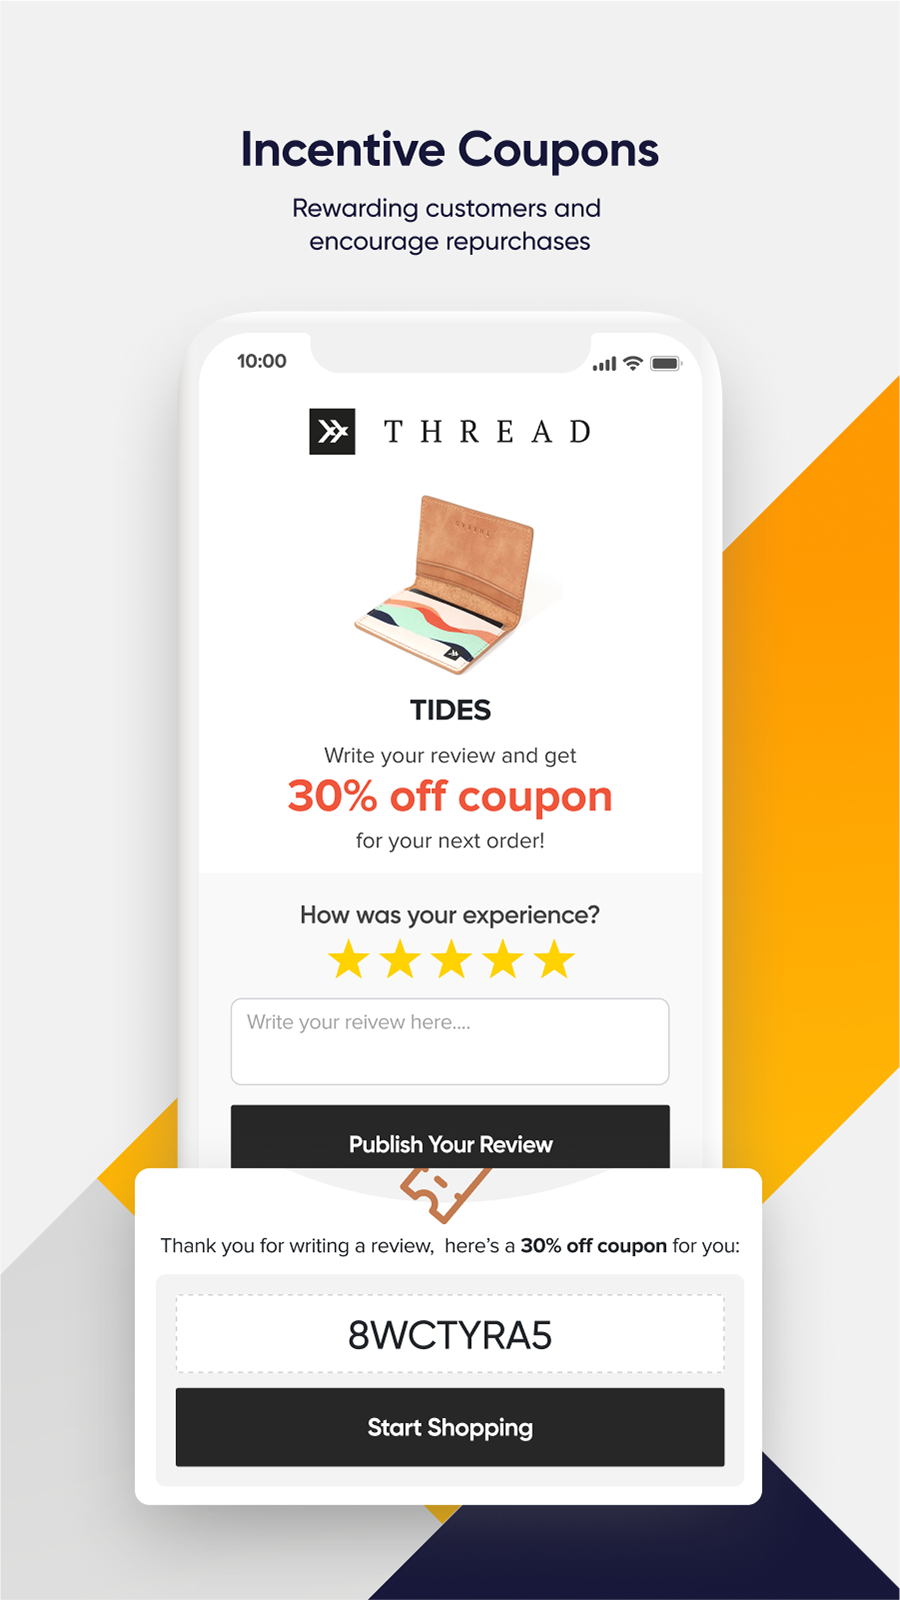 Incentive Customer Reviews with Coupons